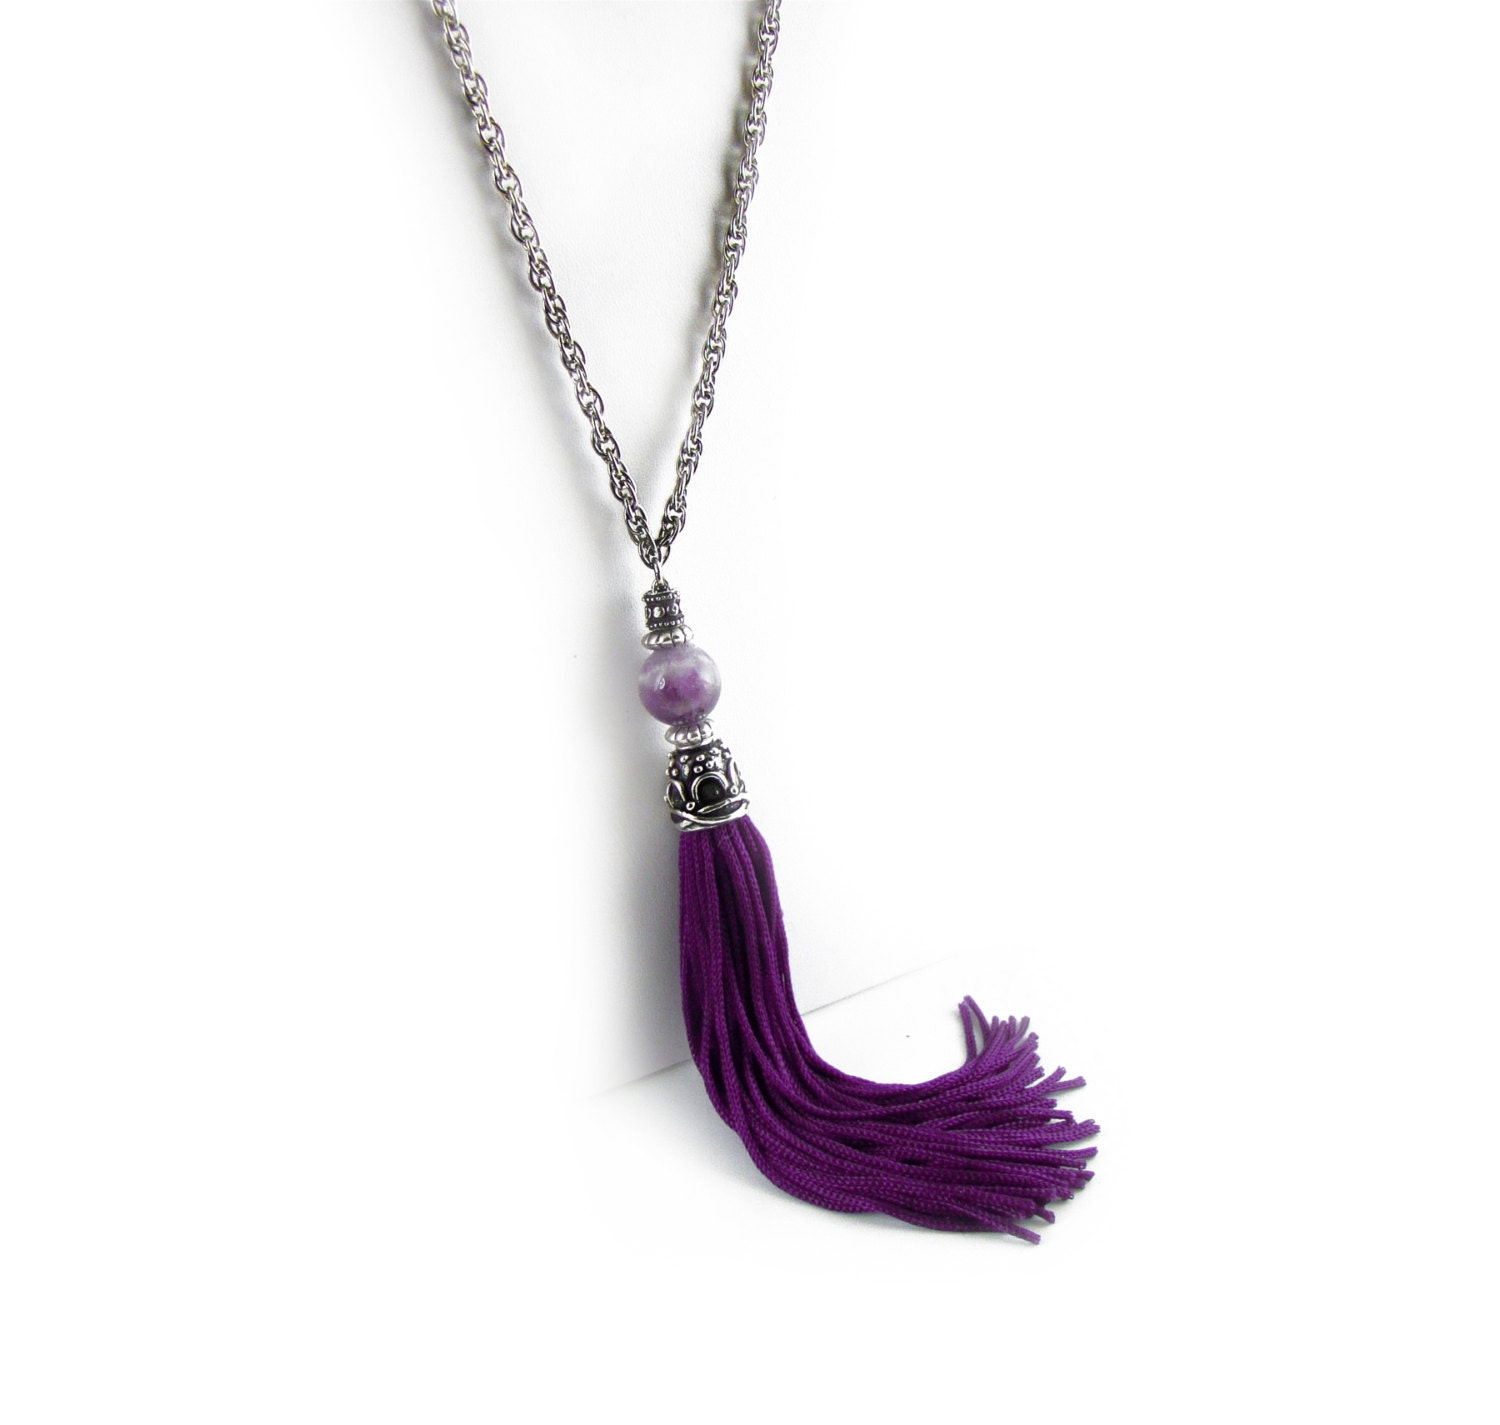 necklace miller panama tassel and bead nicole coin